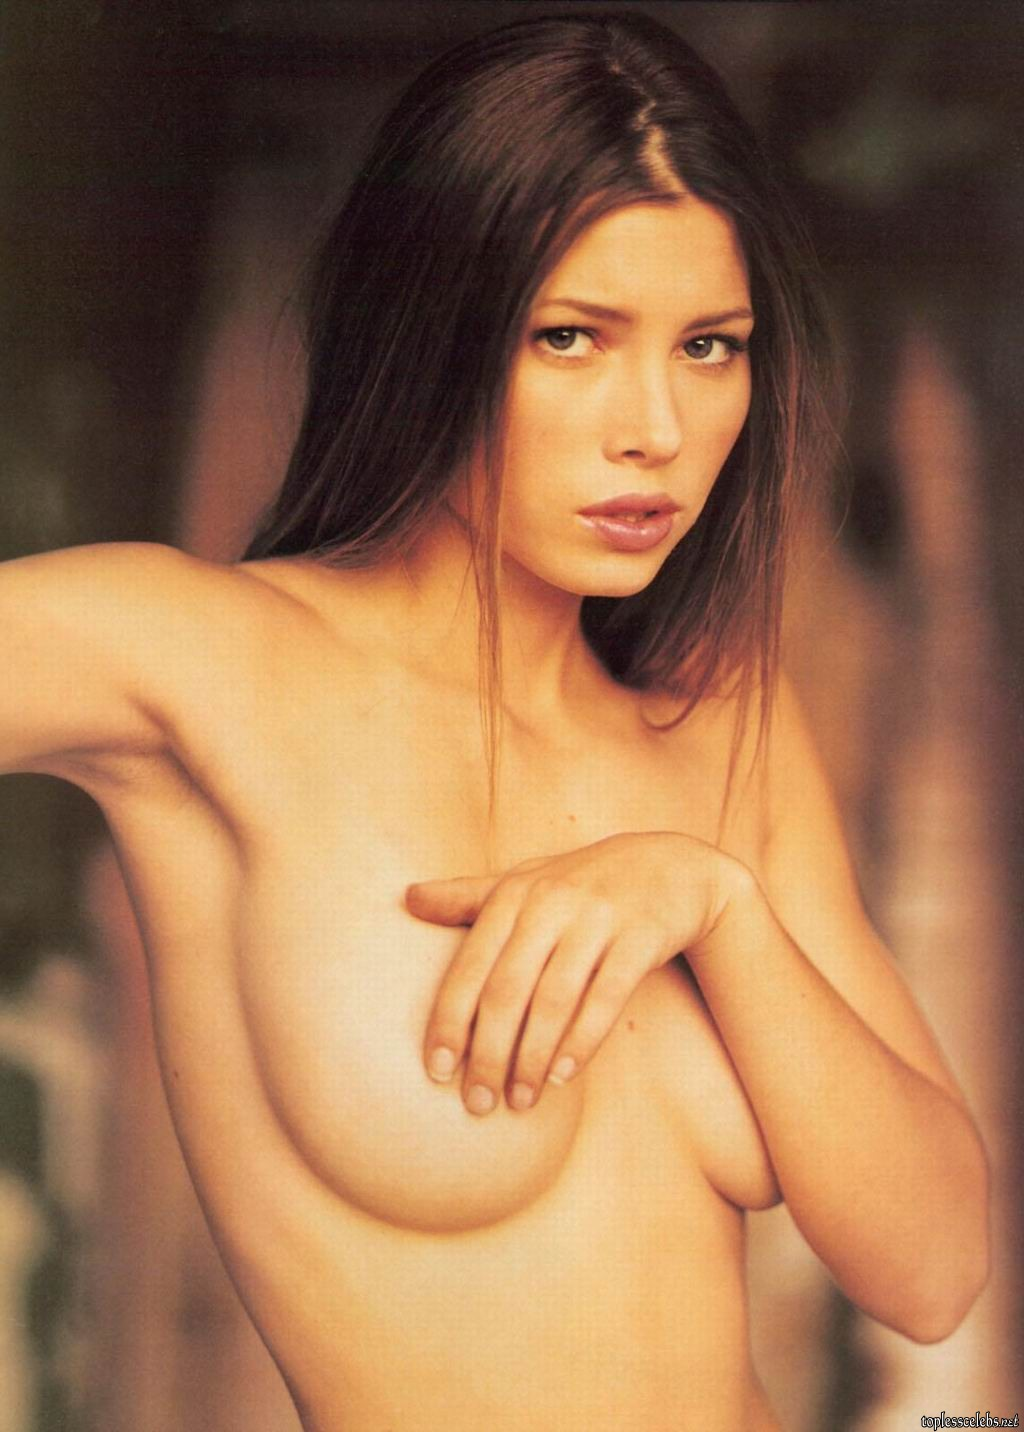 Have Jessica biel sex powder blue nude information true